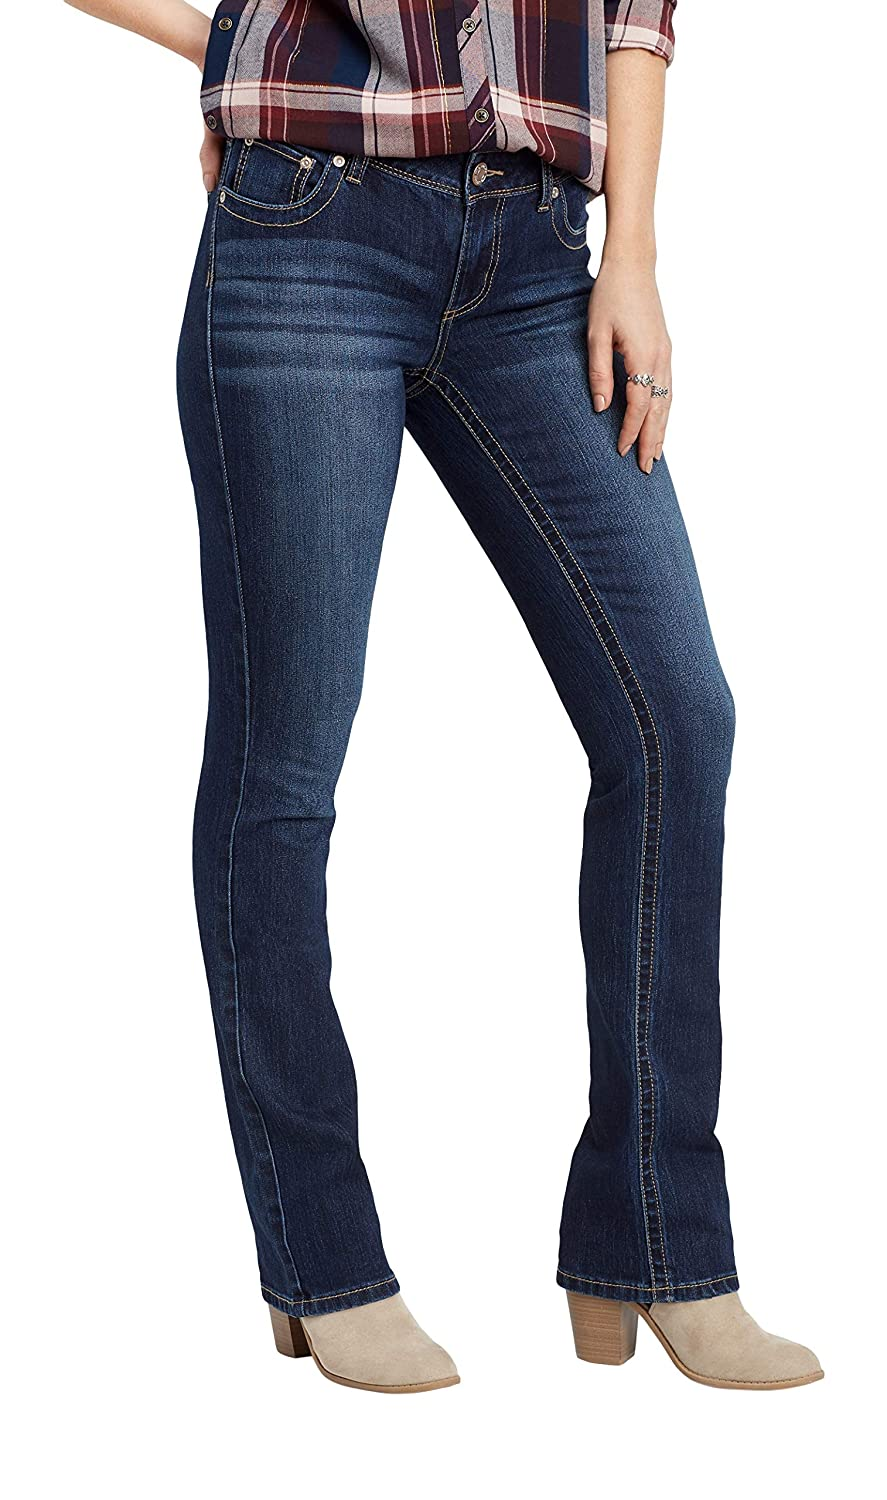 a80ae690a2d maurices Women's Denimflex Bootcut Jeans - Dark Wash Slim Boot at ...